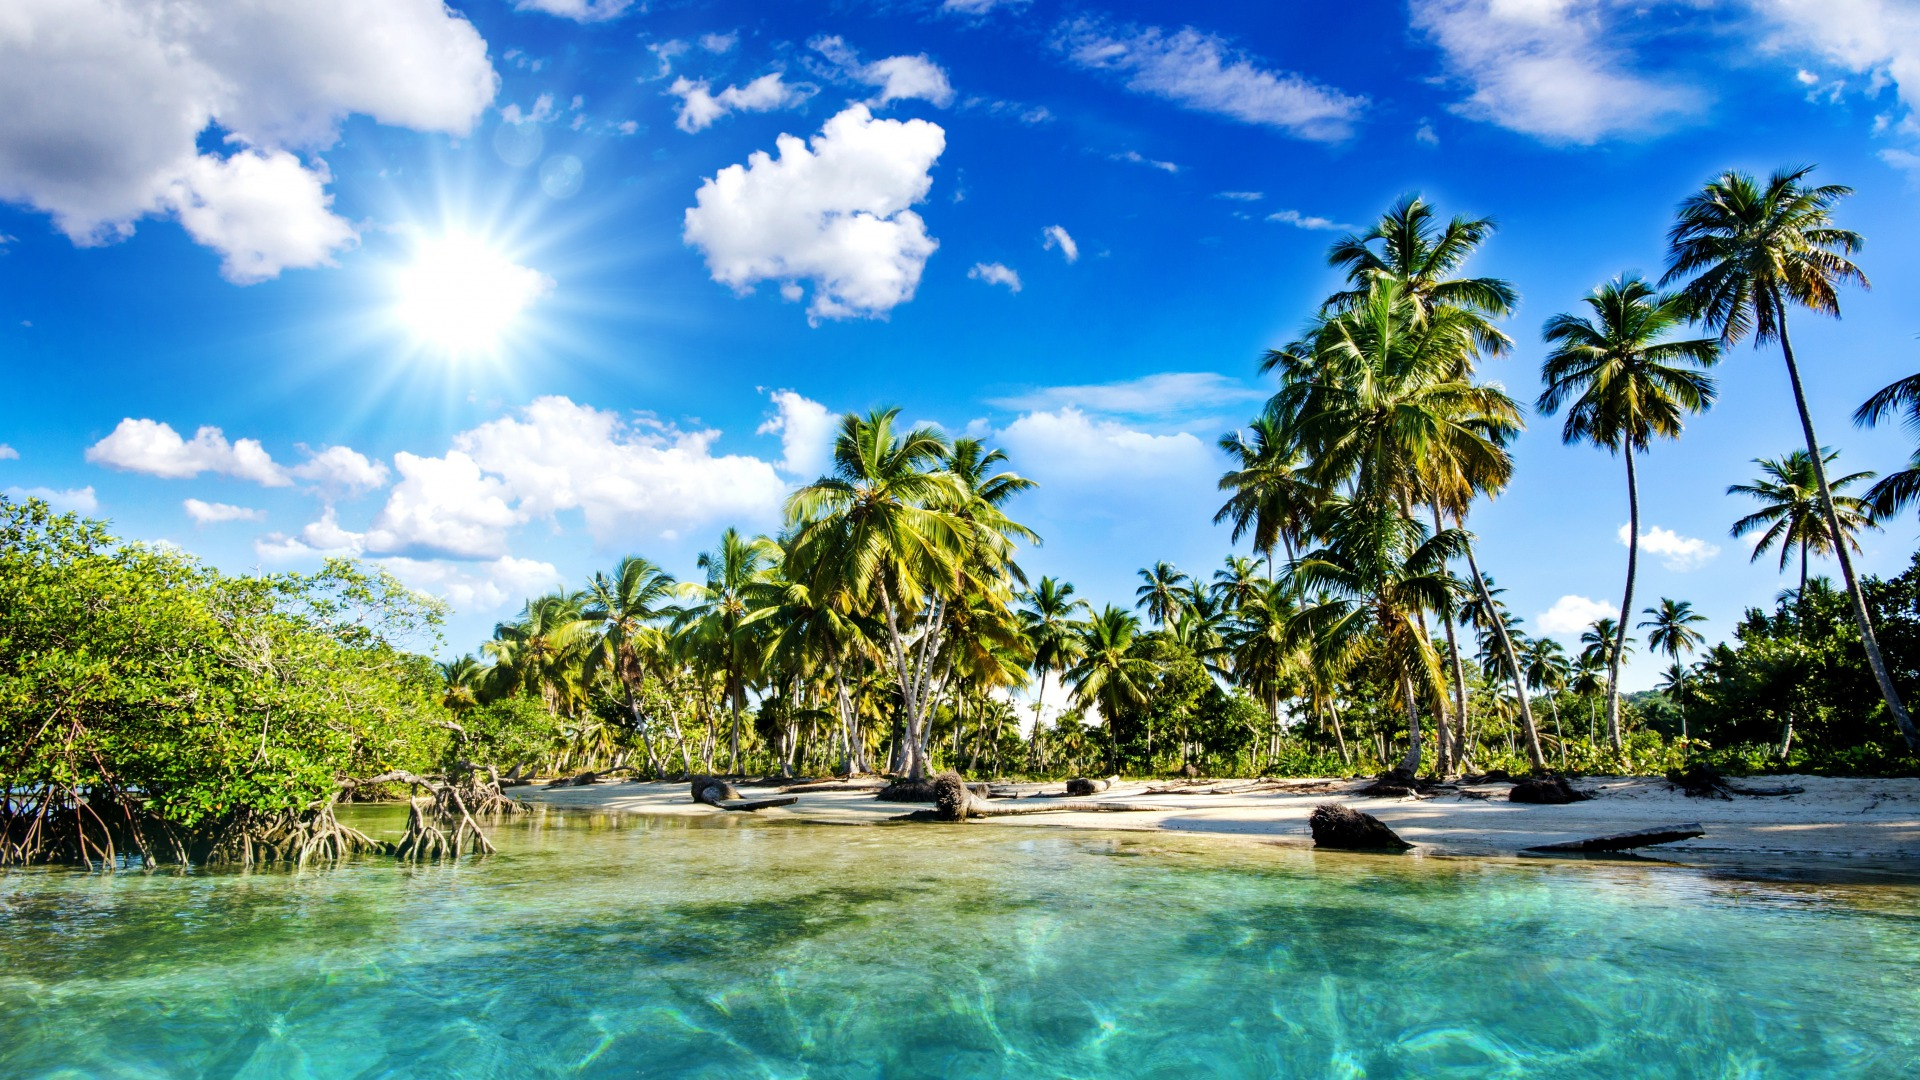 10 Best Tropical Beach Desktop Backgrounds Full Hd 1920